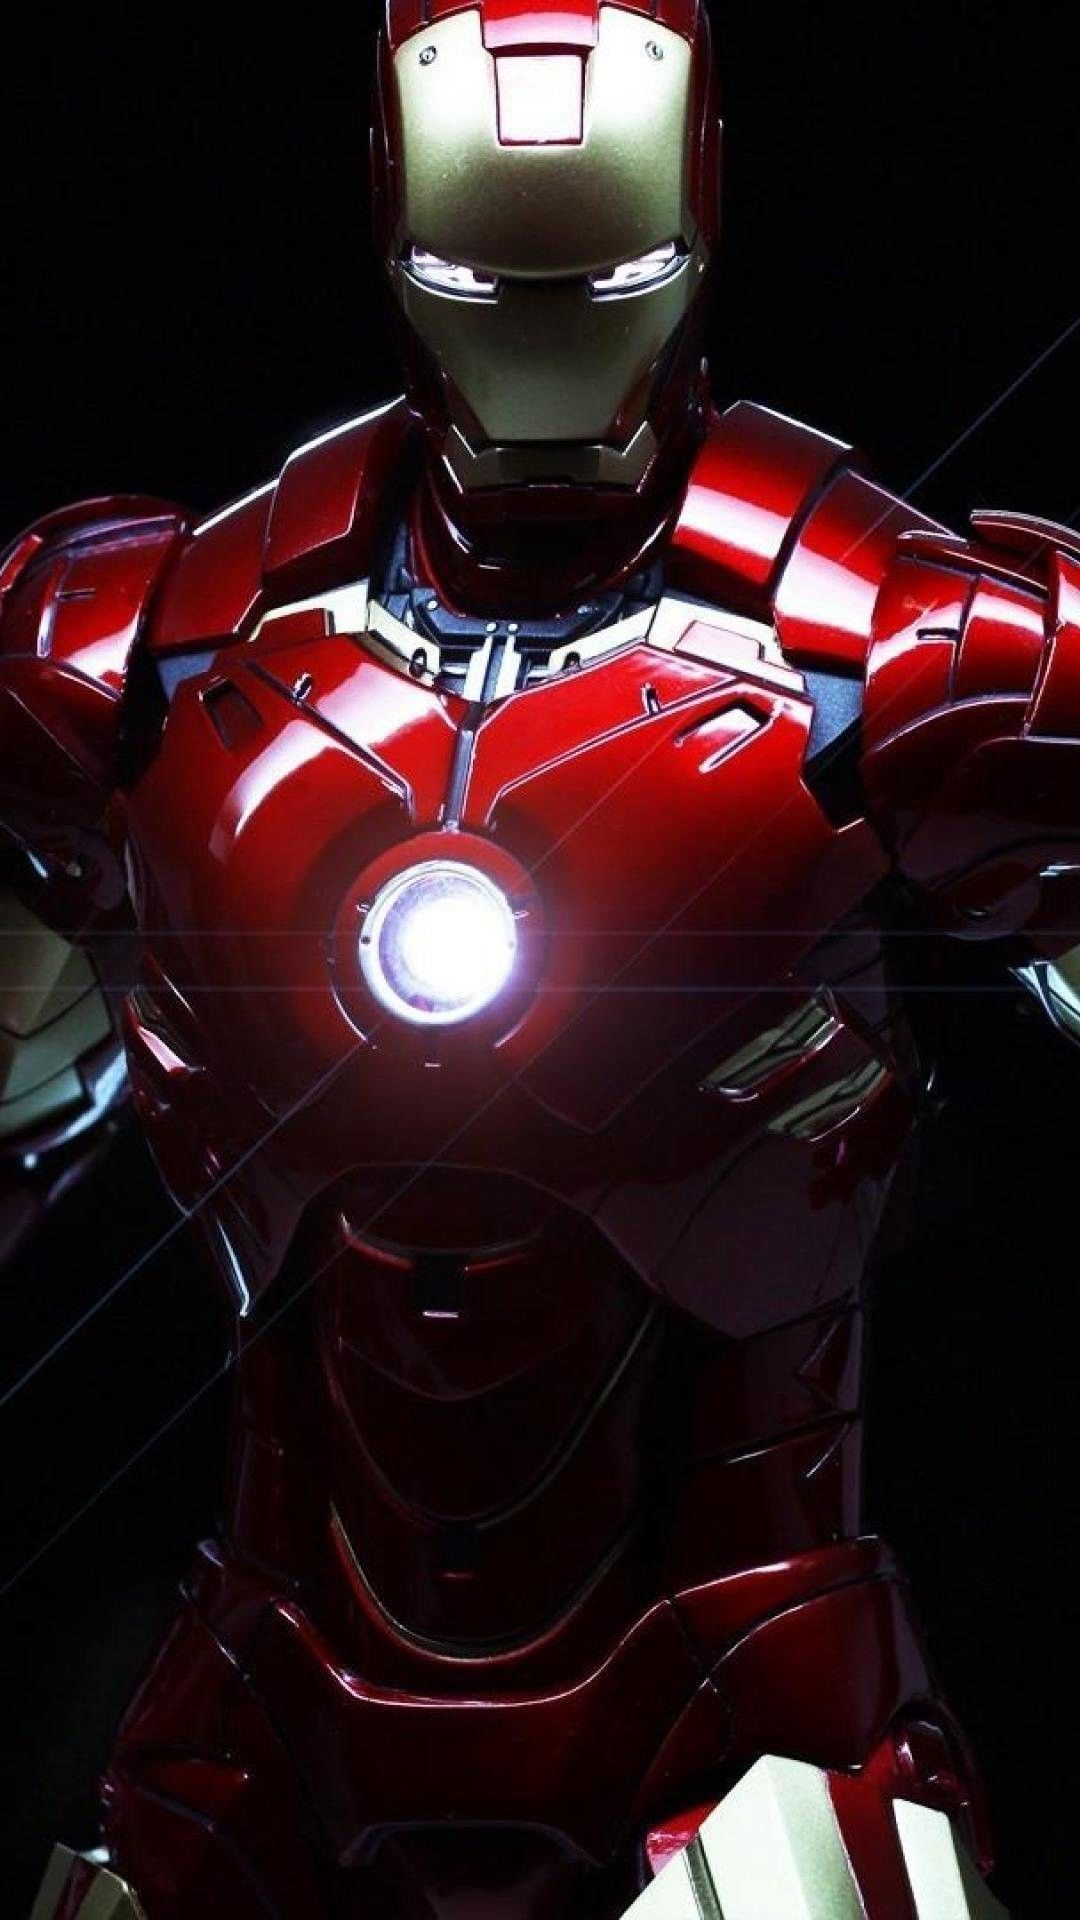 1080x1920 Iron Man Hd Wallpapers For Iphone 6s Wallpaper Rocket Iron Man Wallpaper Iron Man Man Wallpaper